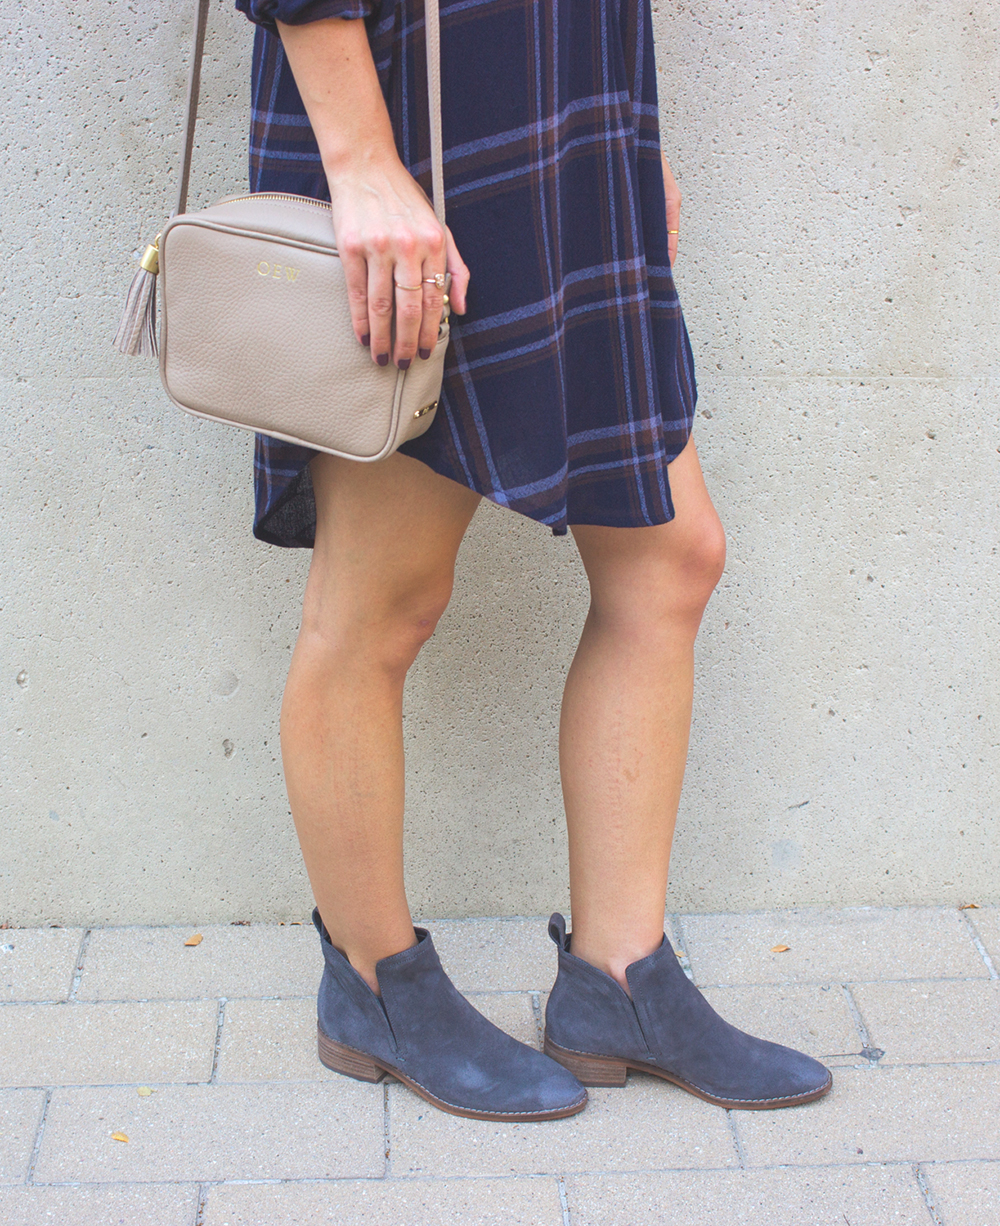 livvyland-blog-olivia-watson-plaid-flannel-shirt-shift-dress-dolce-vita-tesse-blue-suede-ankle-booties-navy-9